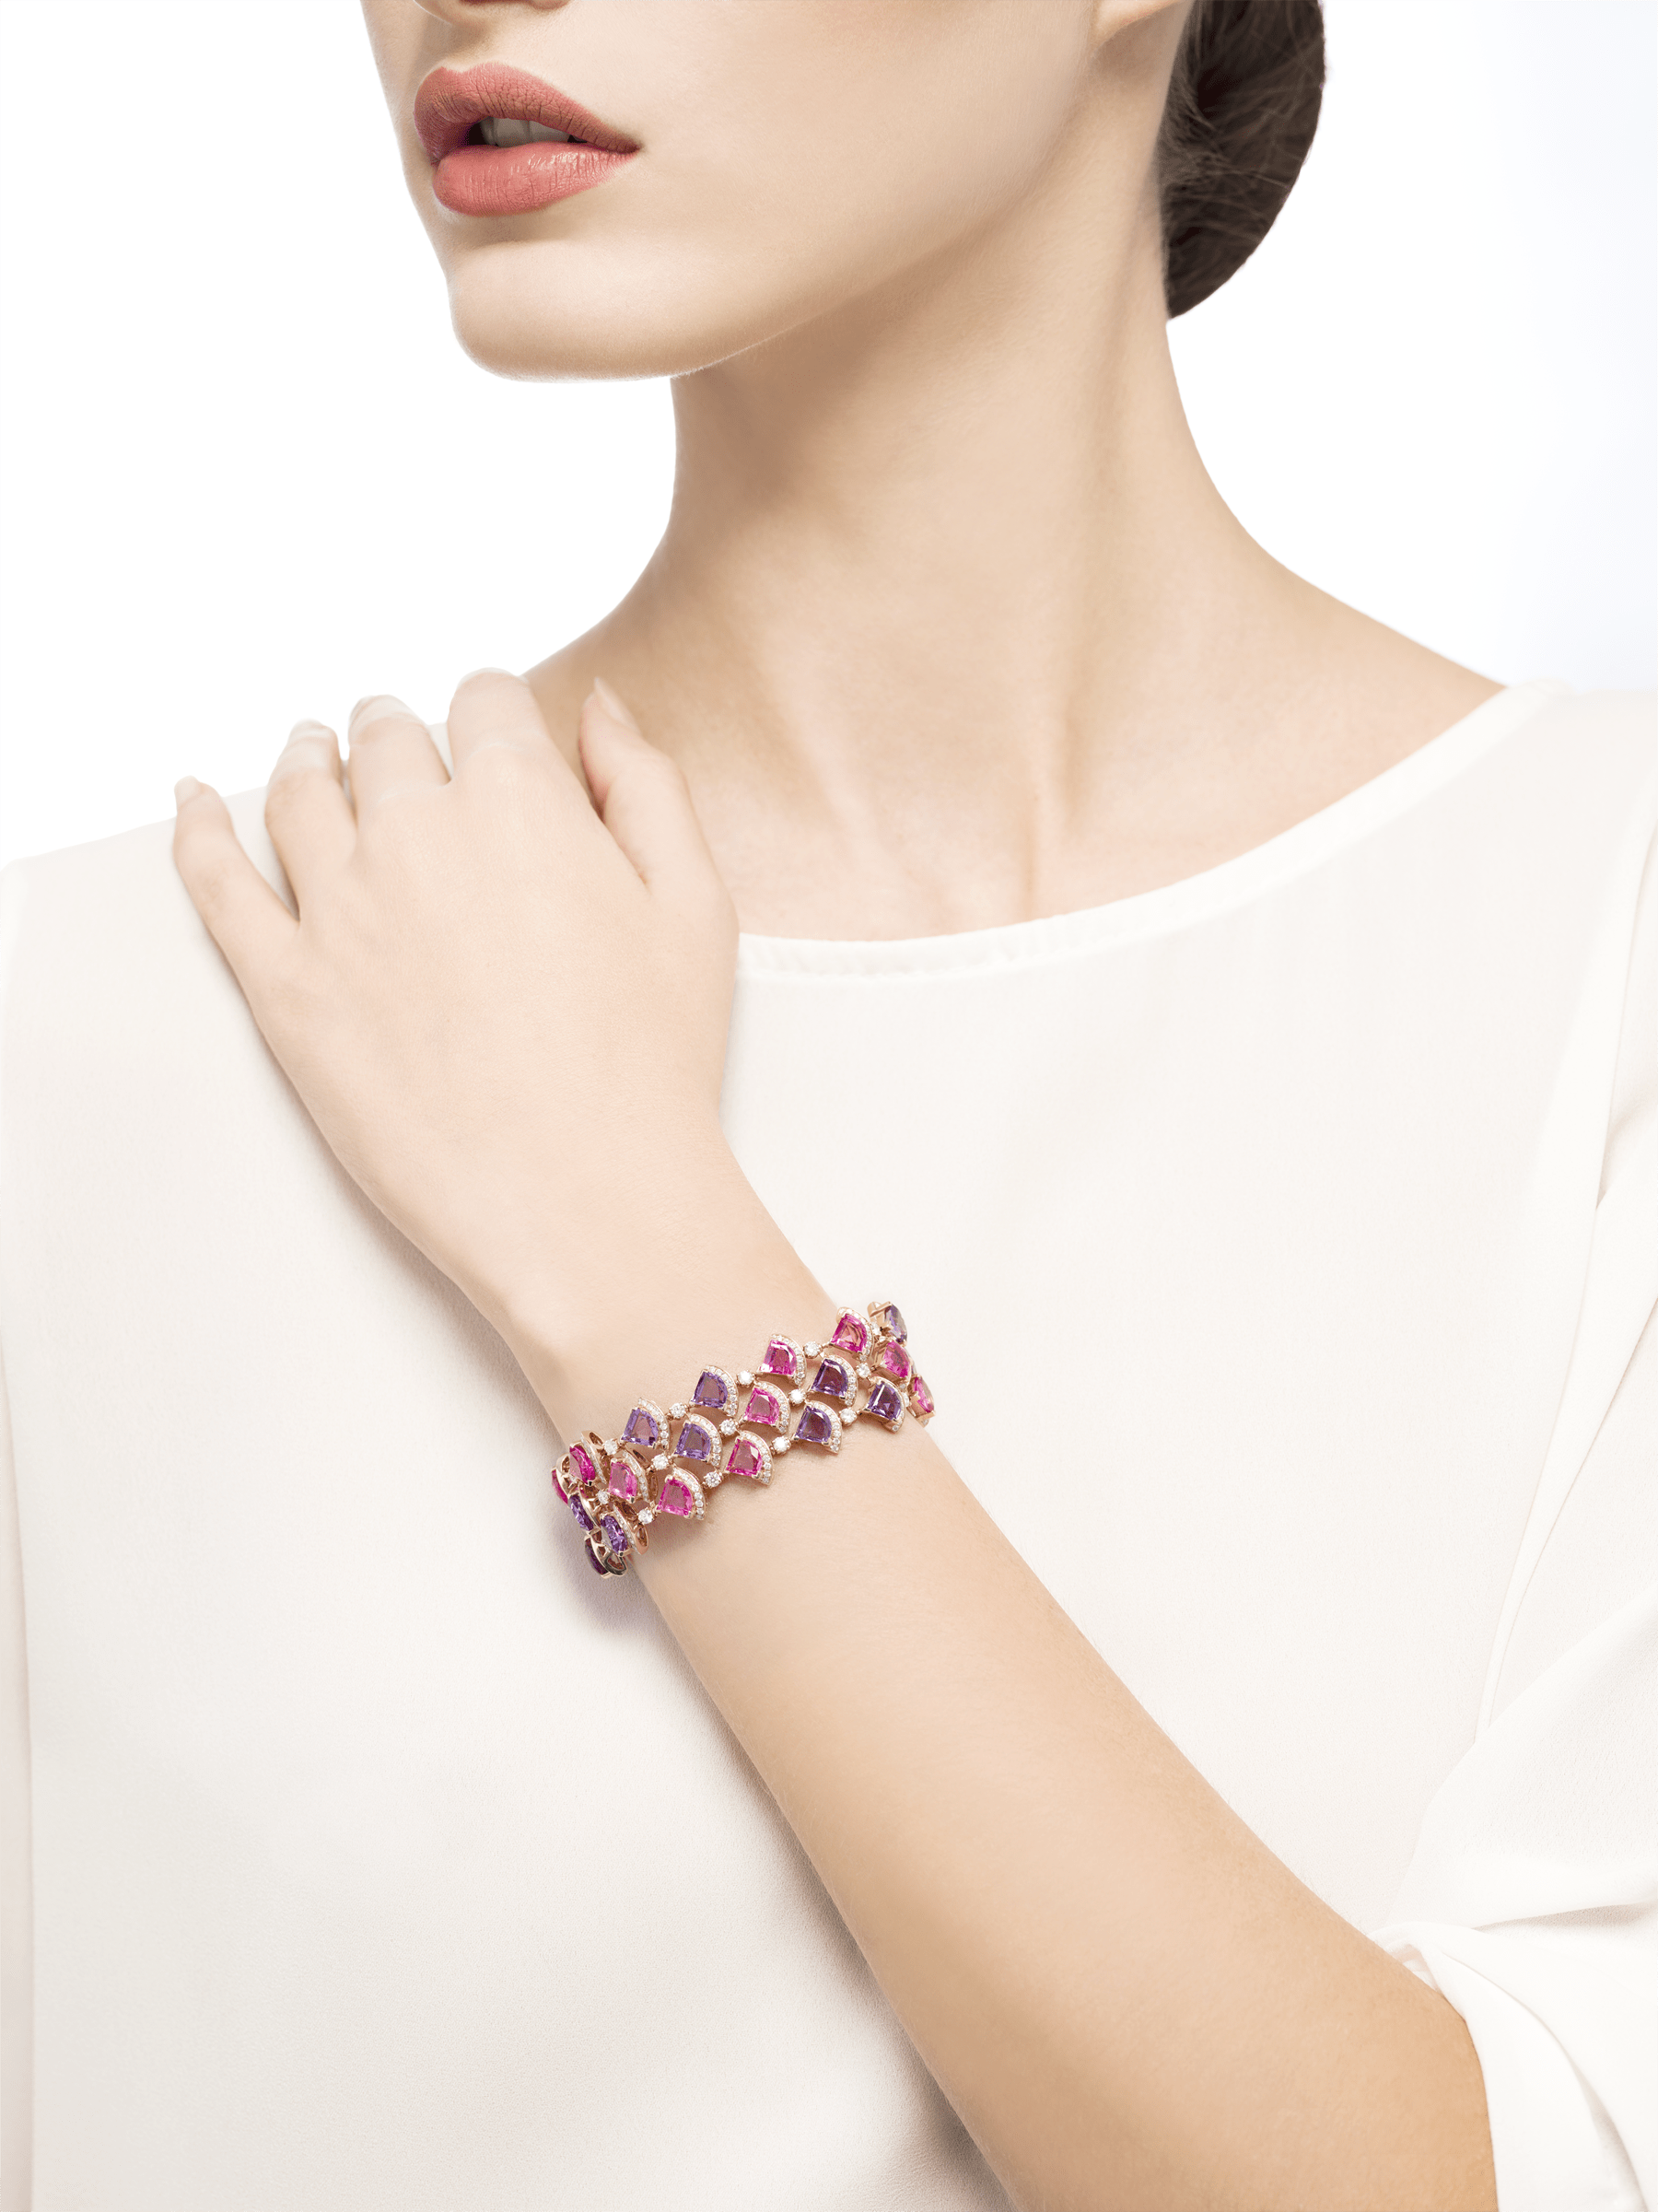 DIVAS' DREAM bracelet in 18 kt rose gold, set with pink rubellite, amethyst and pavé diamonds. BR858025 image 4